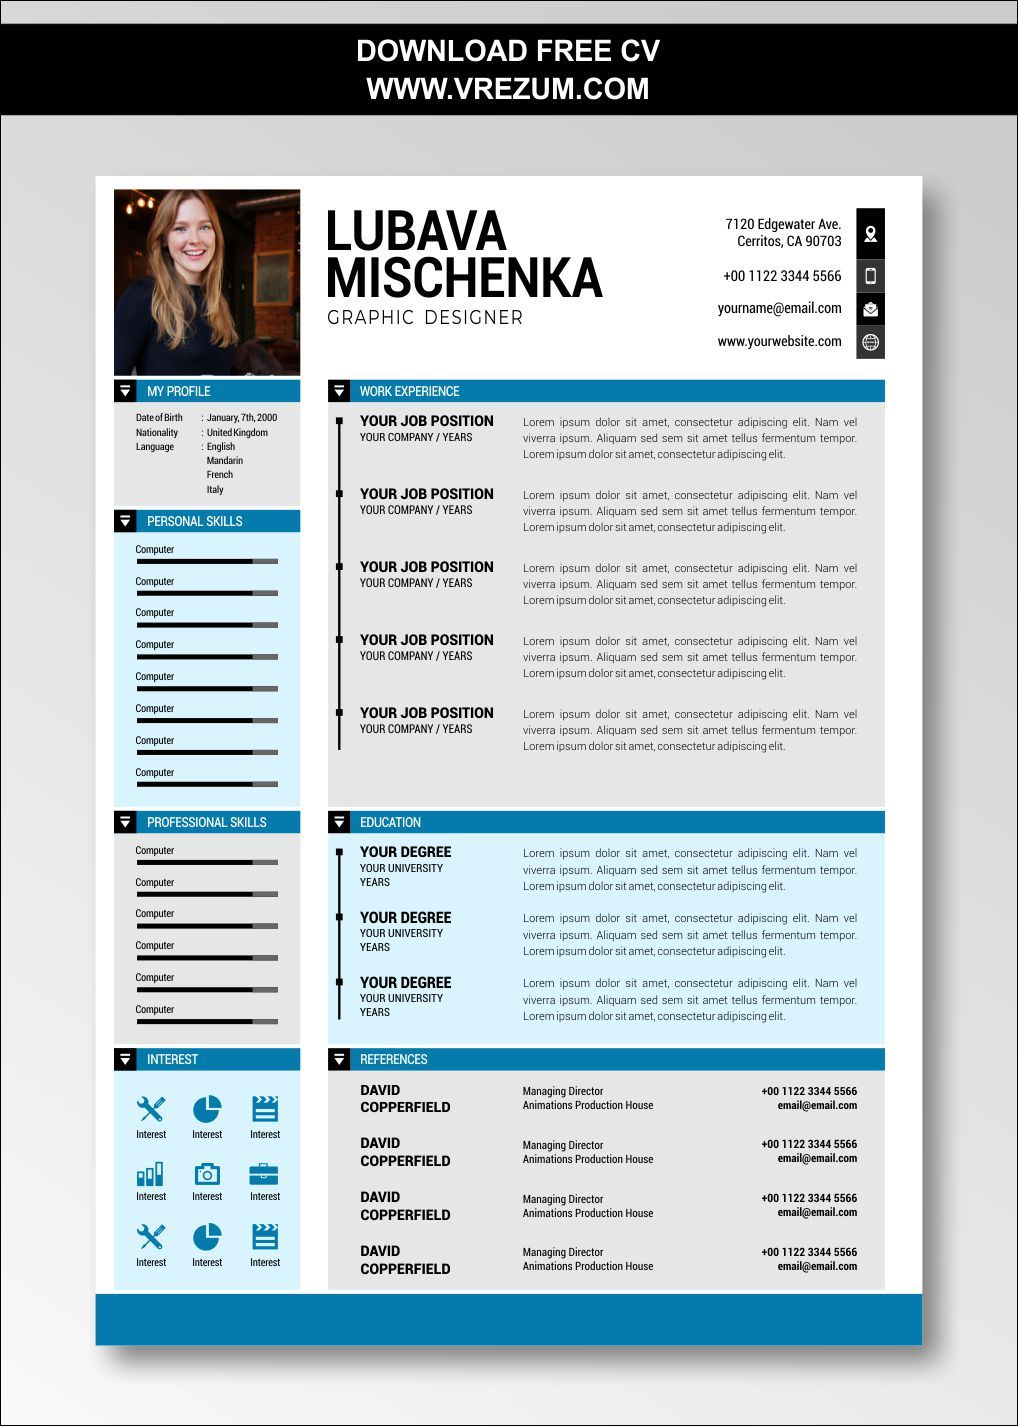 (EDITABLE) FREE CV Templates For Graduate Students in